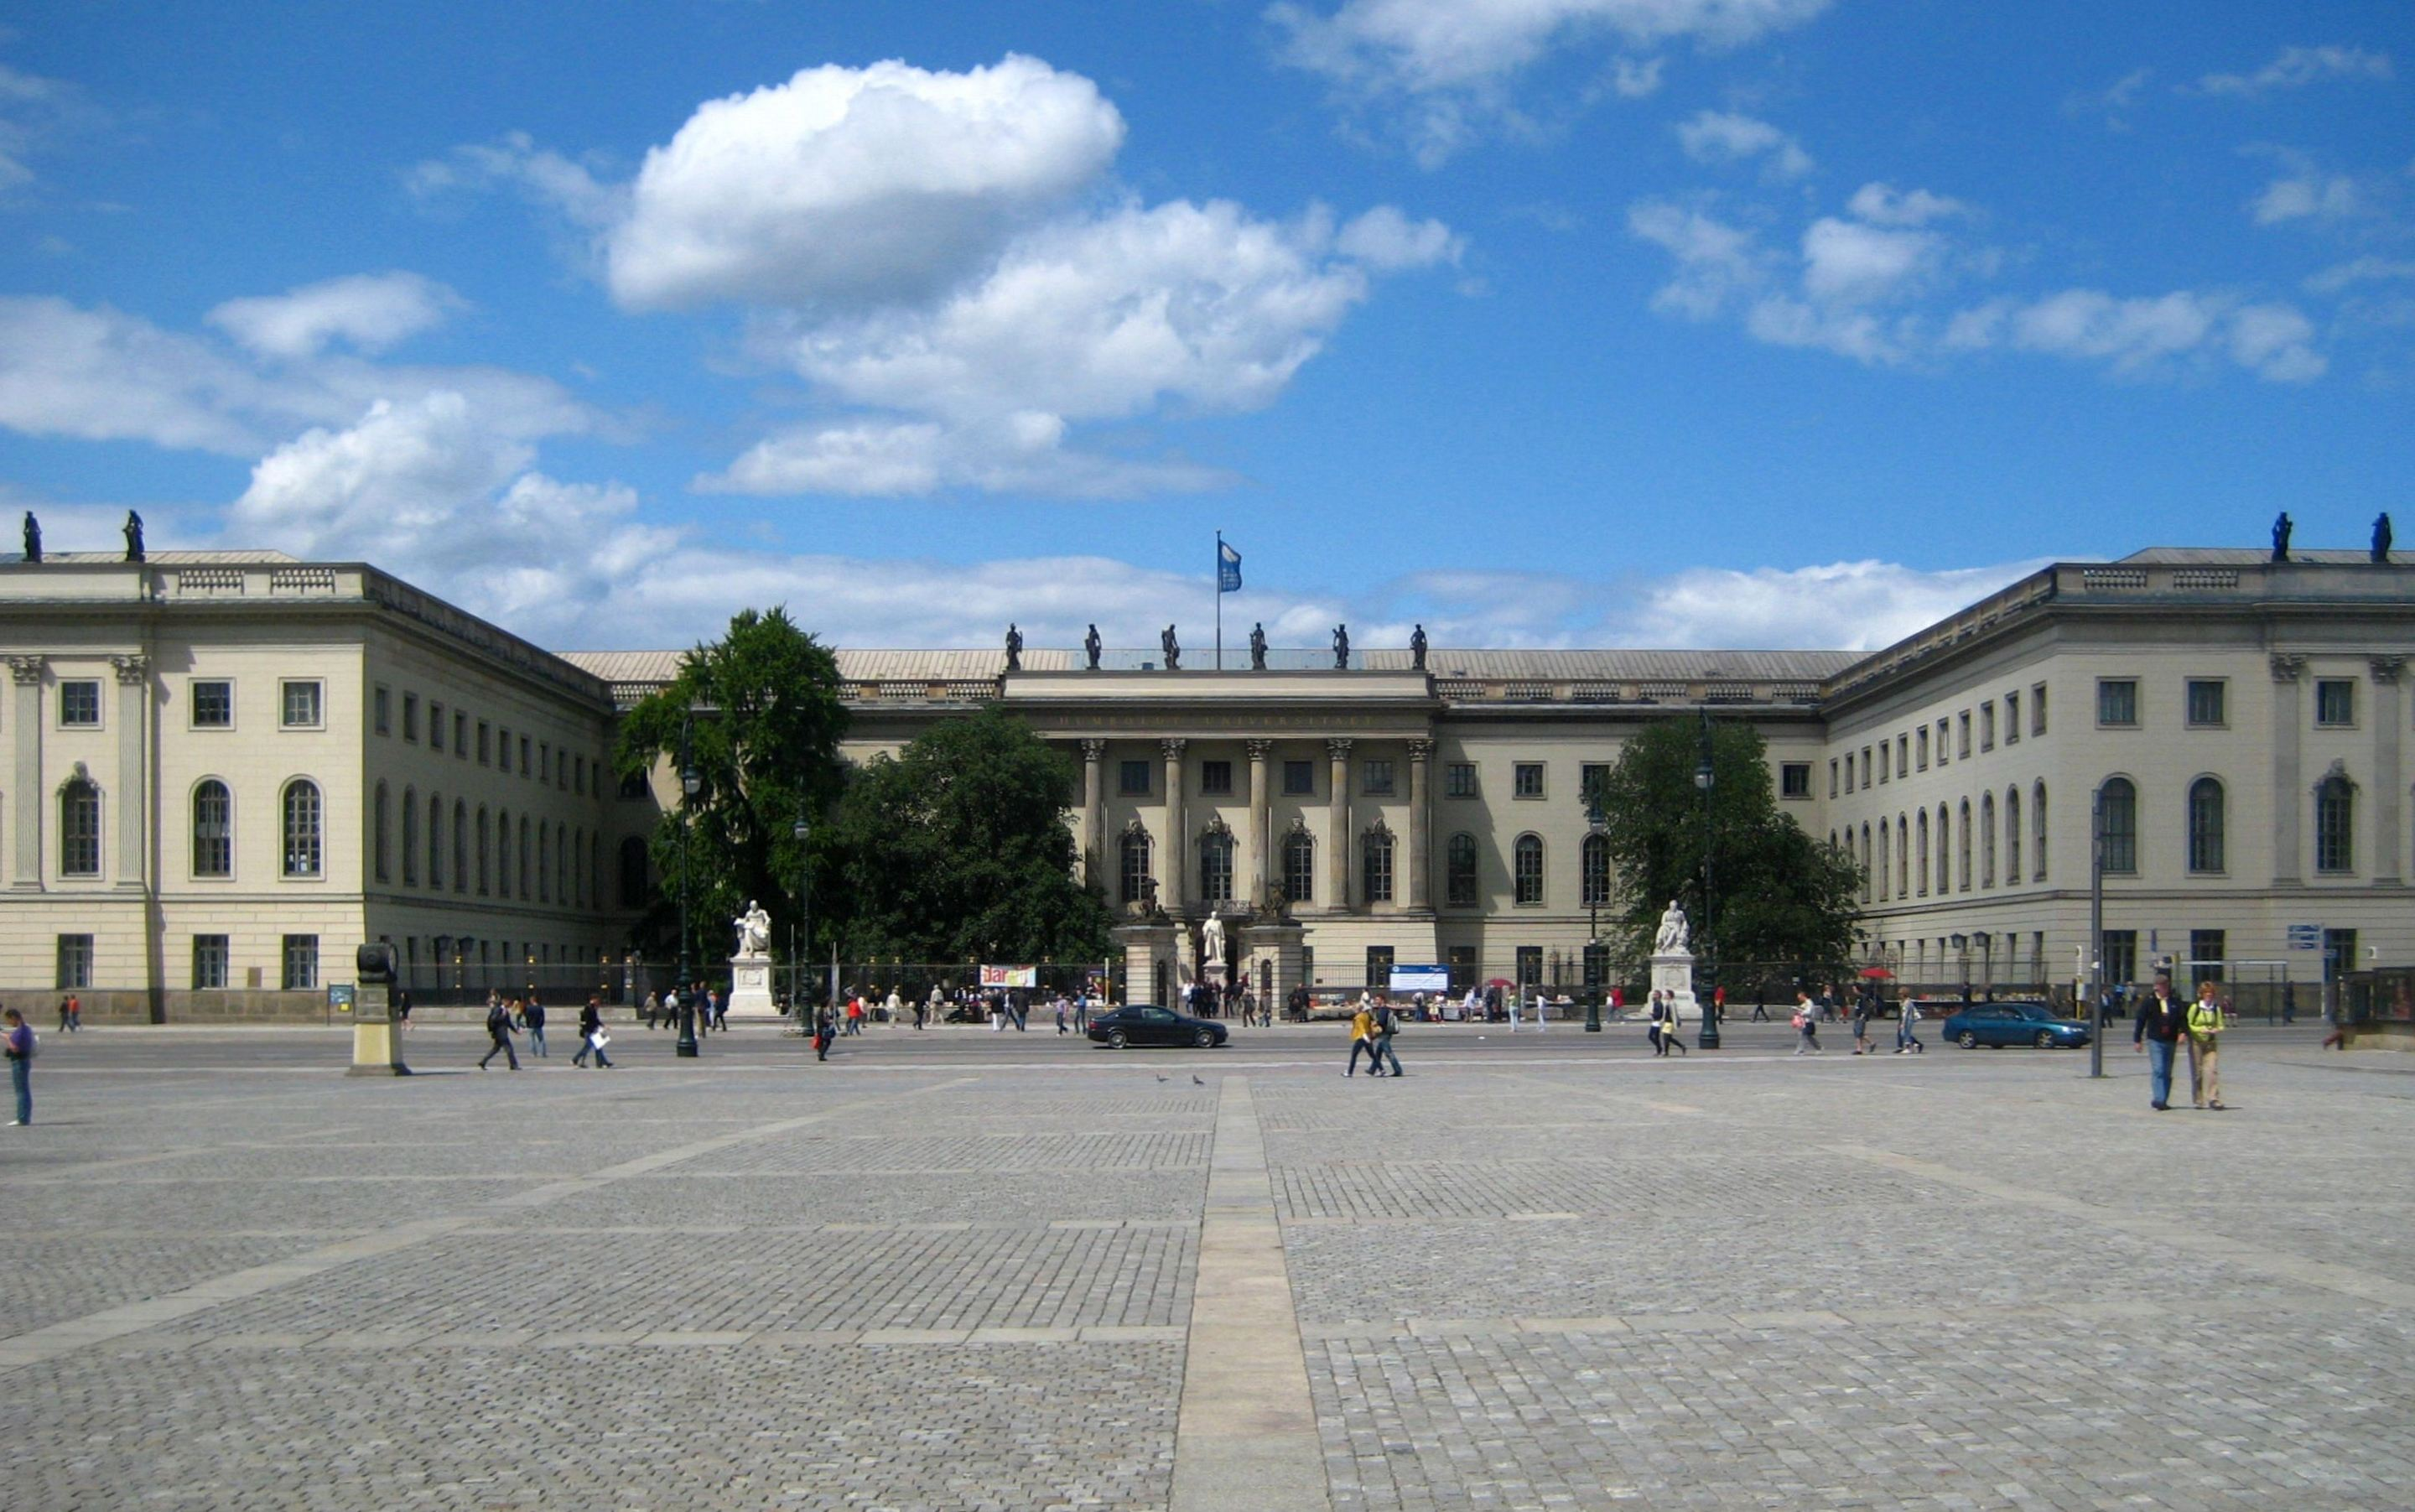 image of Humboldt University of Berlin